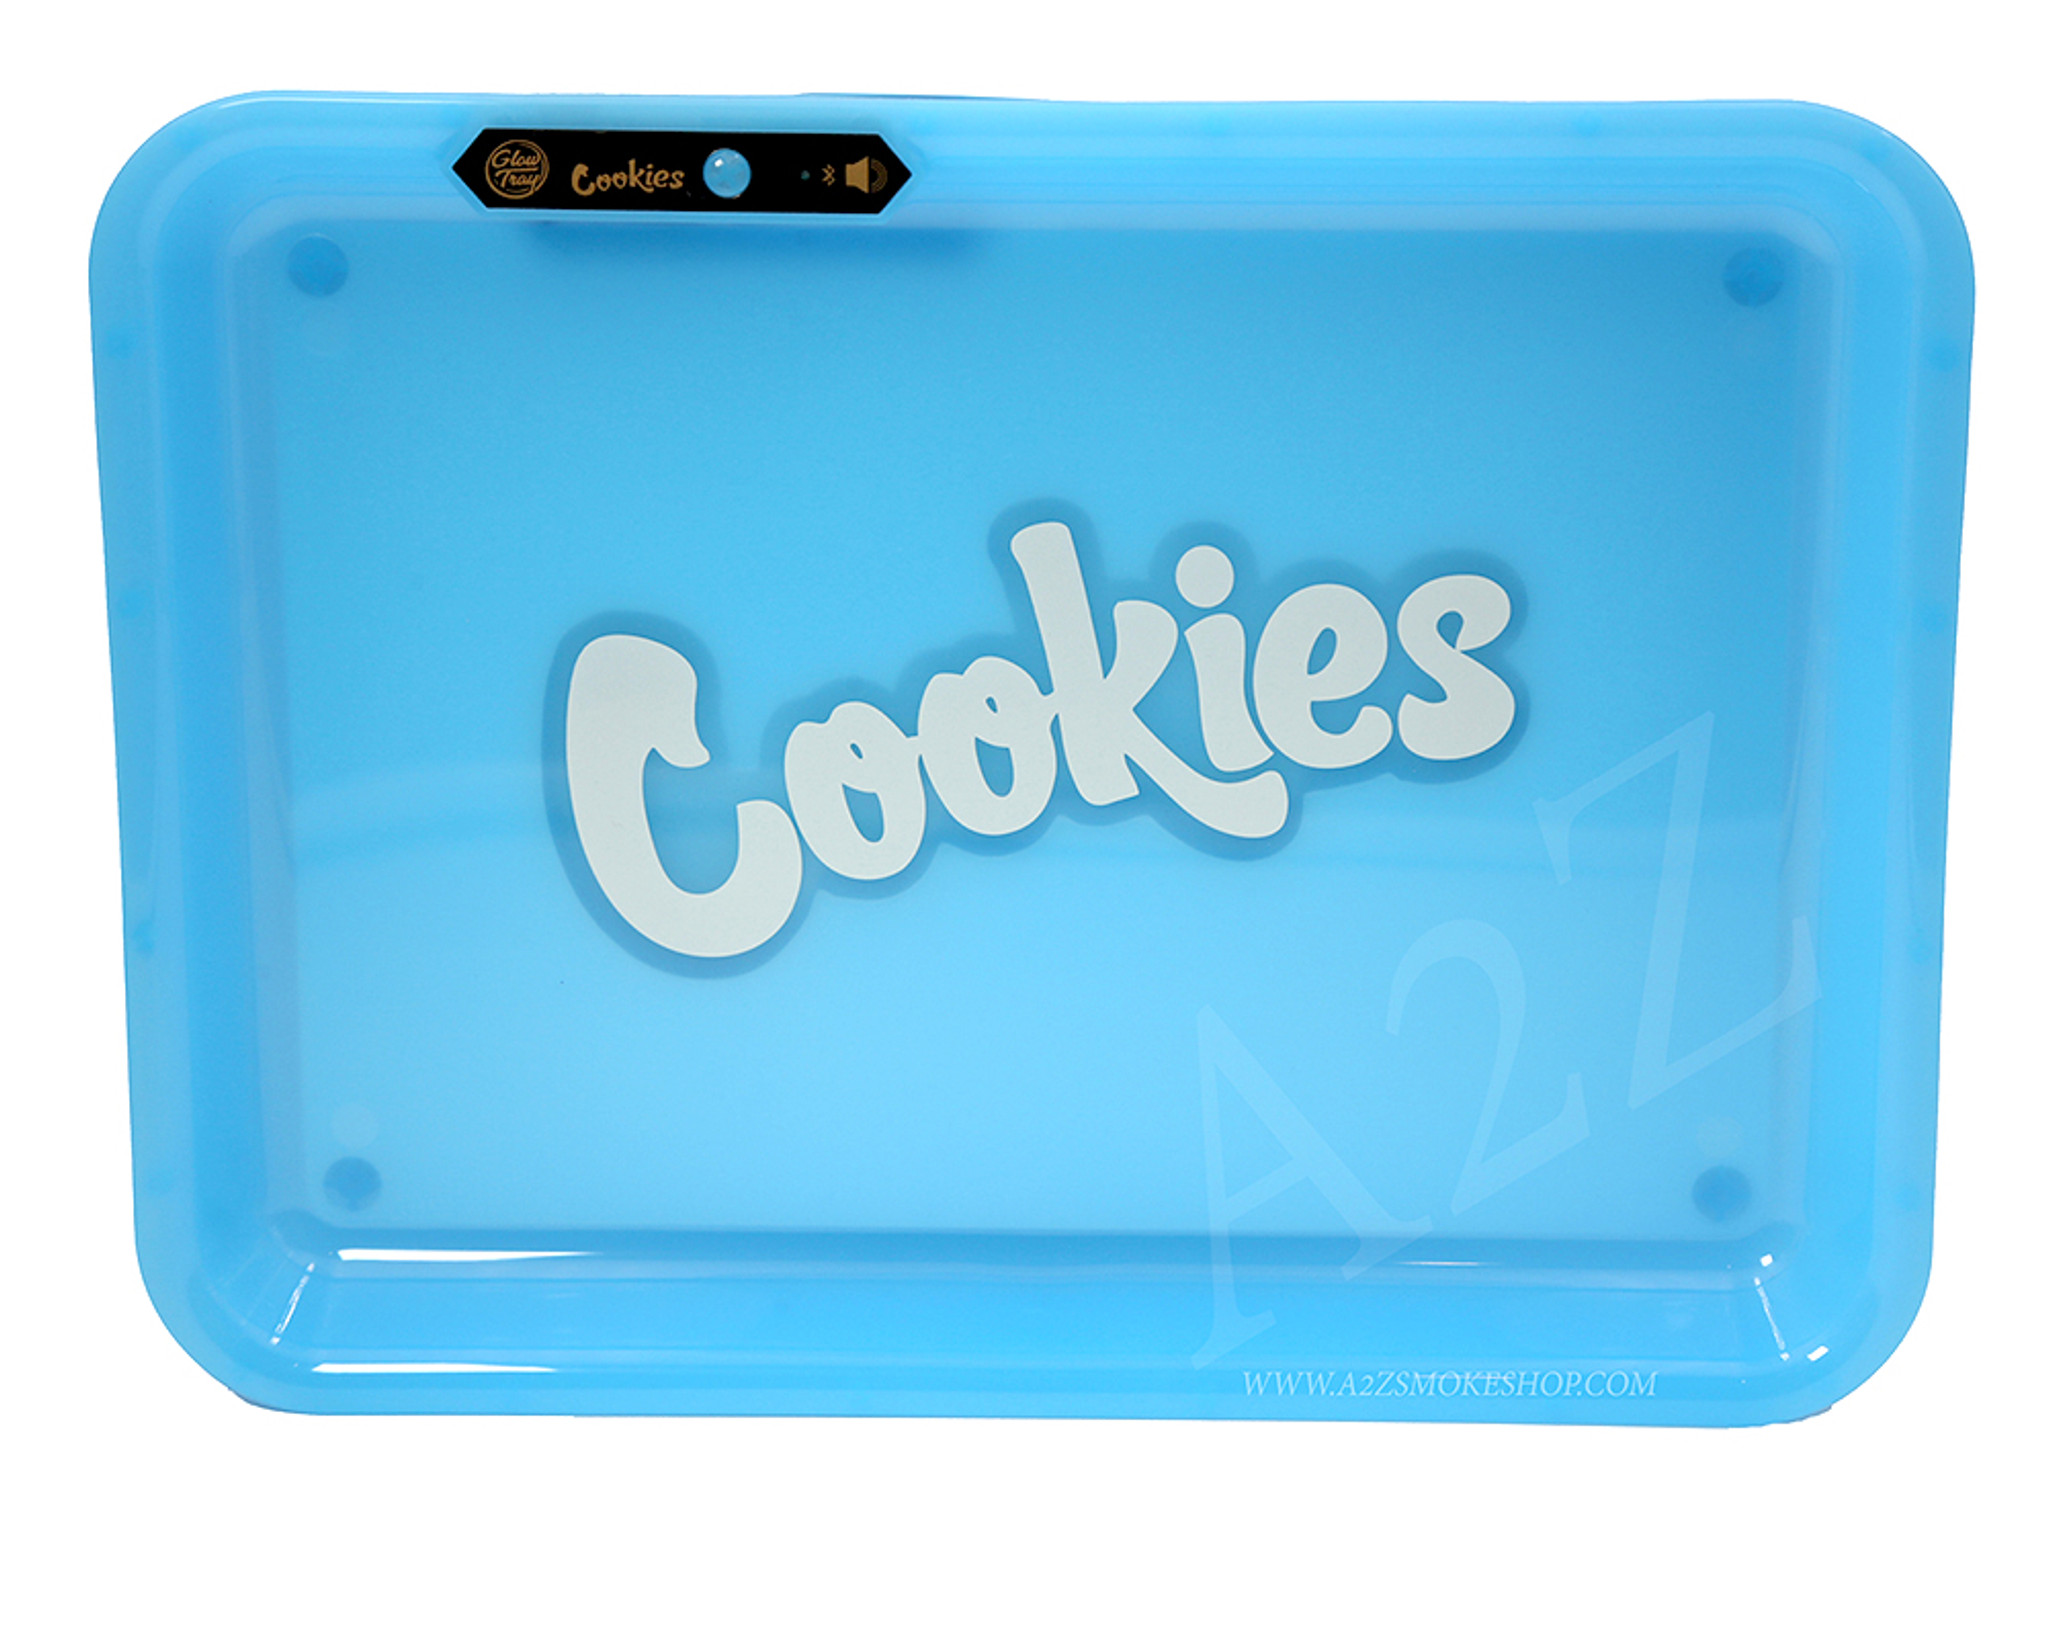 GLOW TRAY X COOKIES LED LIGHT UP ROLLING TRAY GREEN